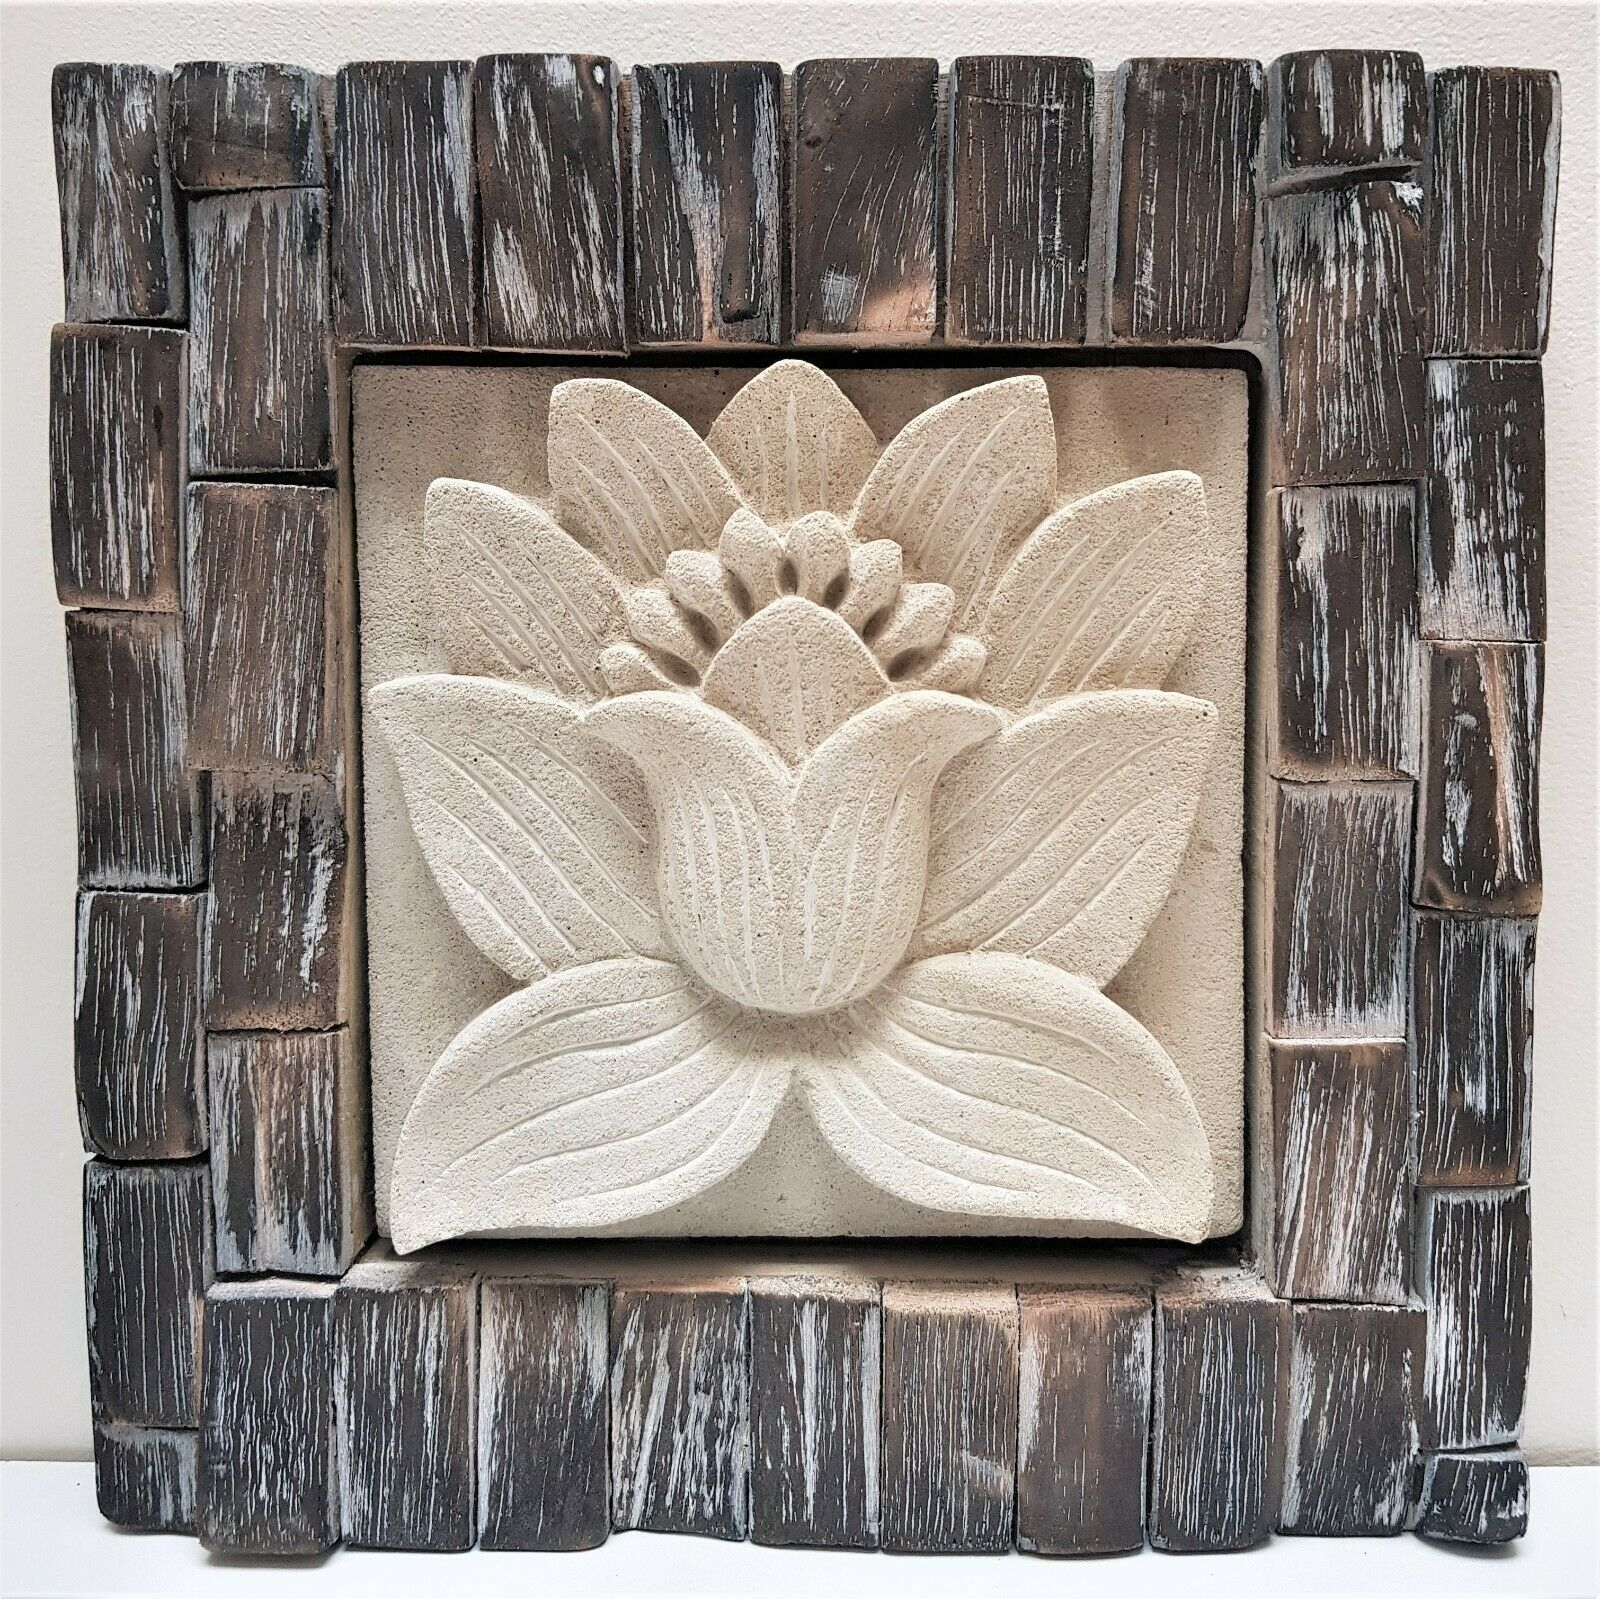 Bali Wall art stone wood carving